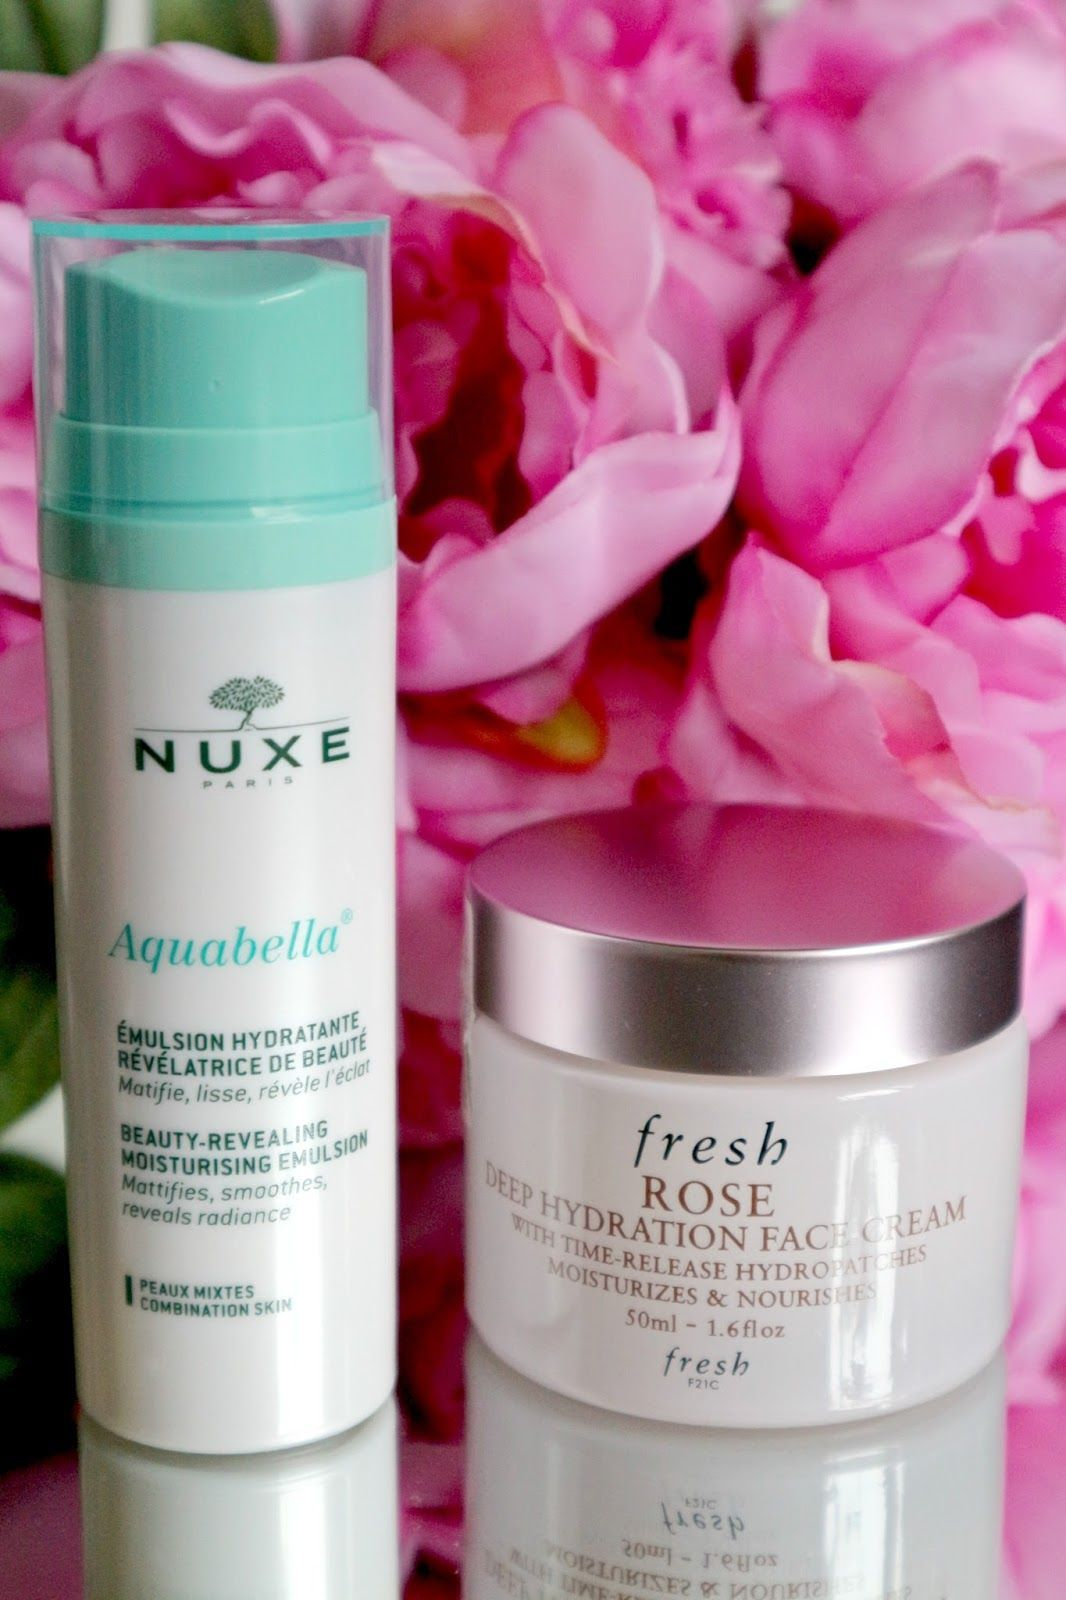 Fresh Rose Deep Hydration Face Cream Nuxe Aquabella Review